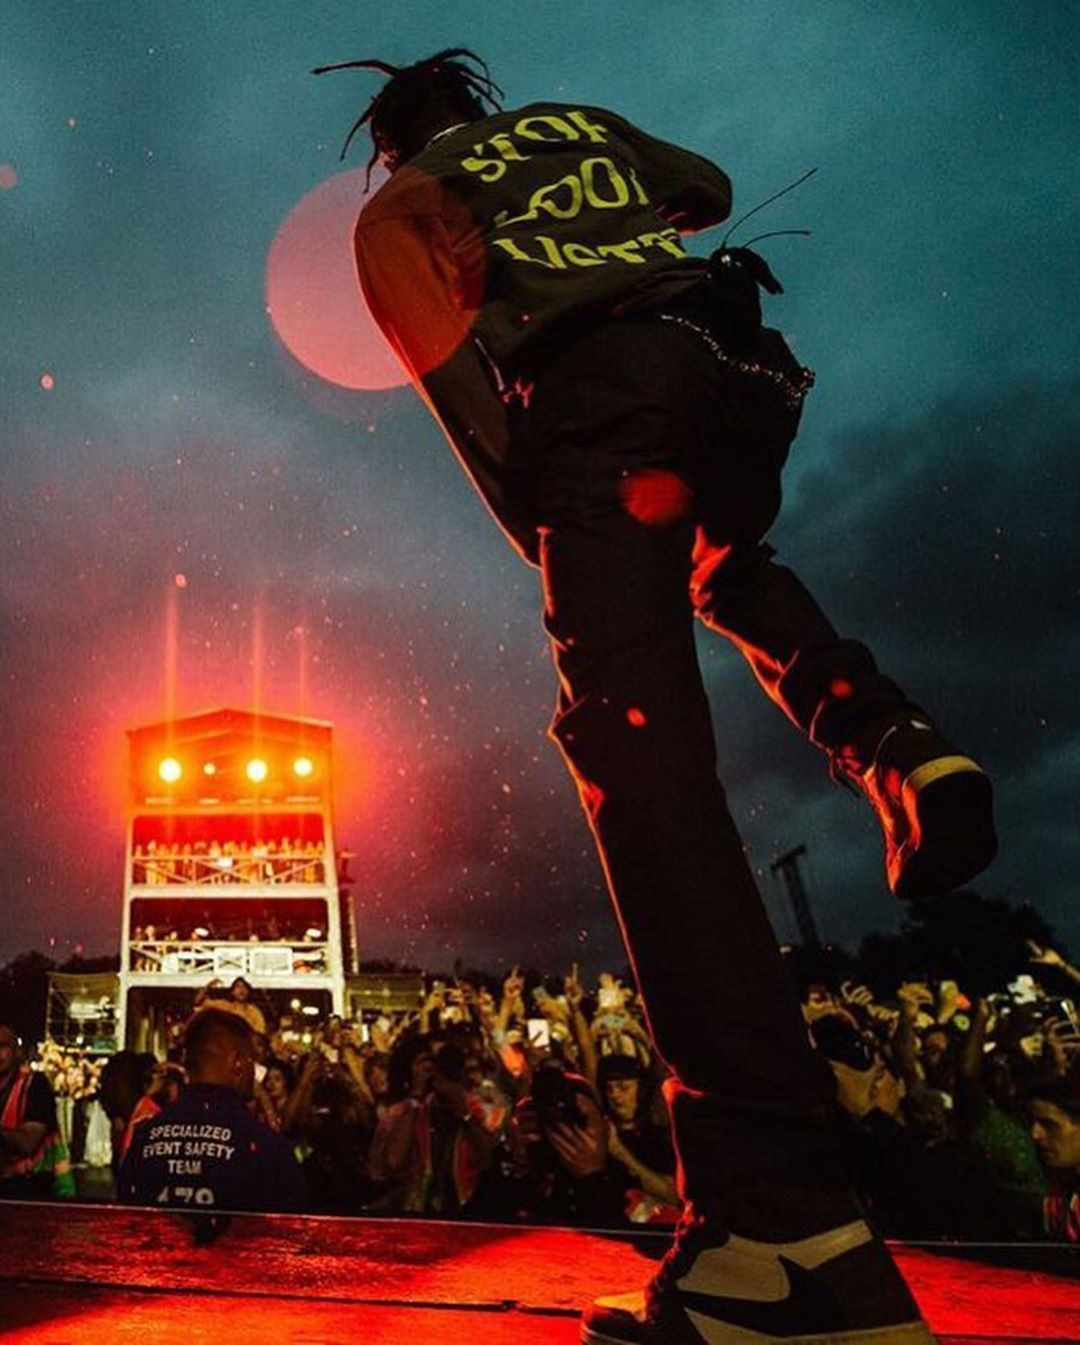 Travis Scott On Instagram Travisscott At Wirelessfestival In London Travis Scott On Insta In 2020 Travis Scott Wallpapers Travis Scott Art Travis Scott Background